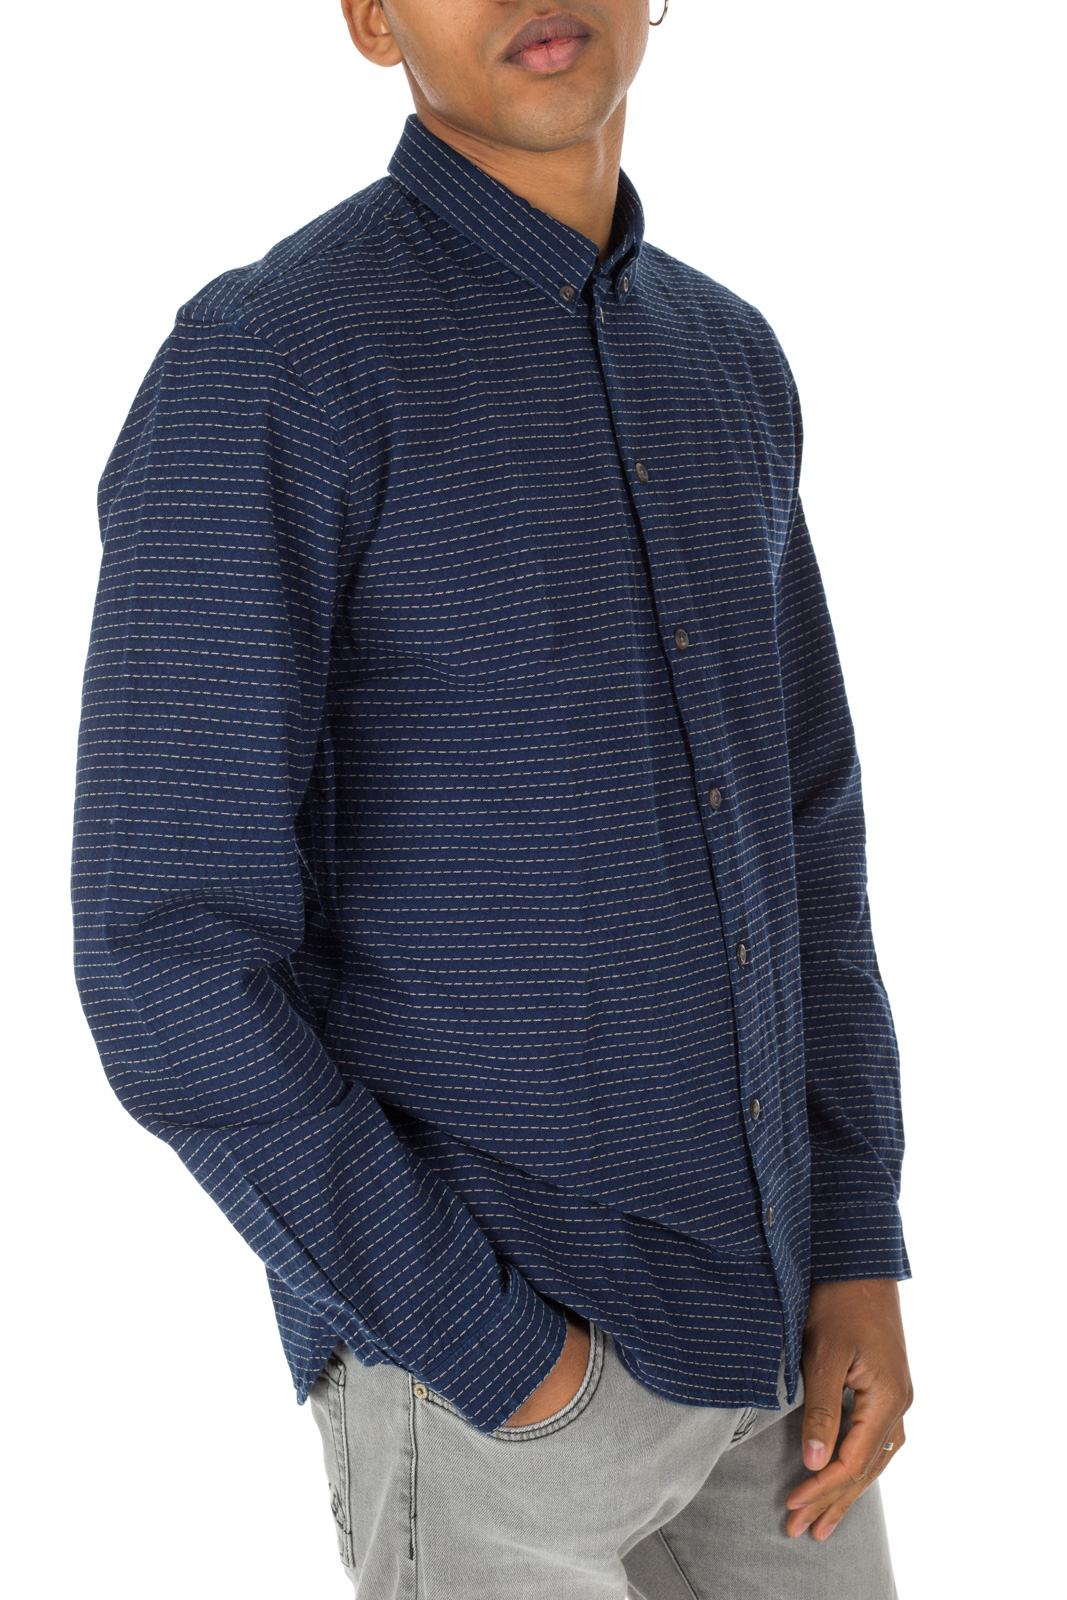 Minimum - Blue Crest Embroidered Shirt